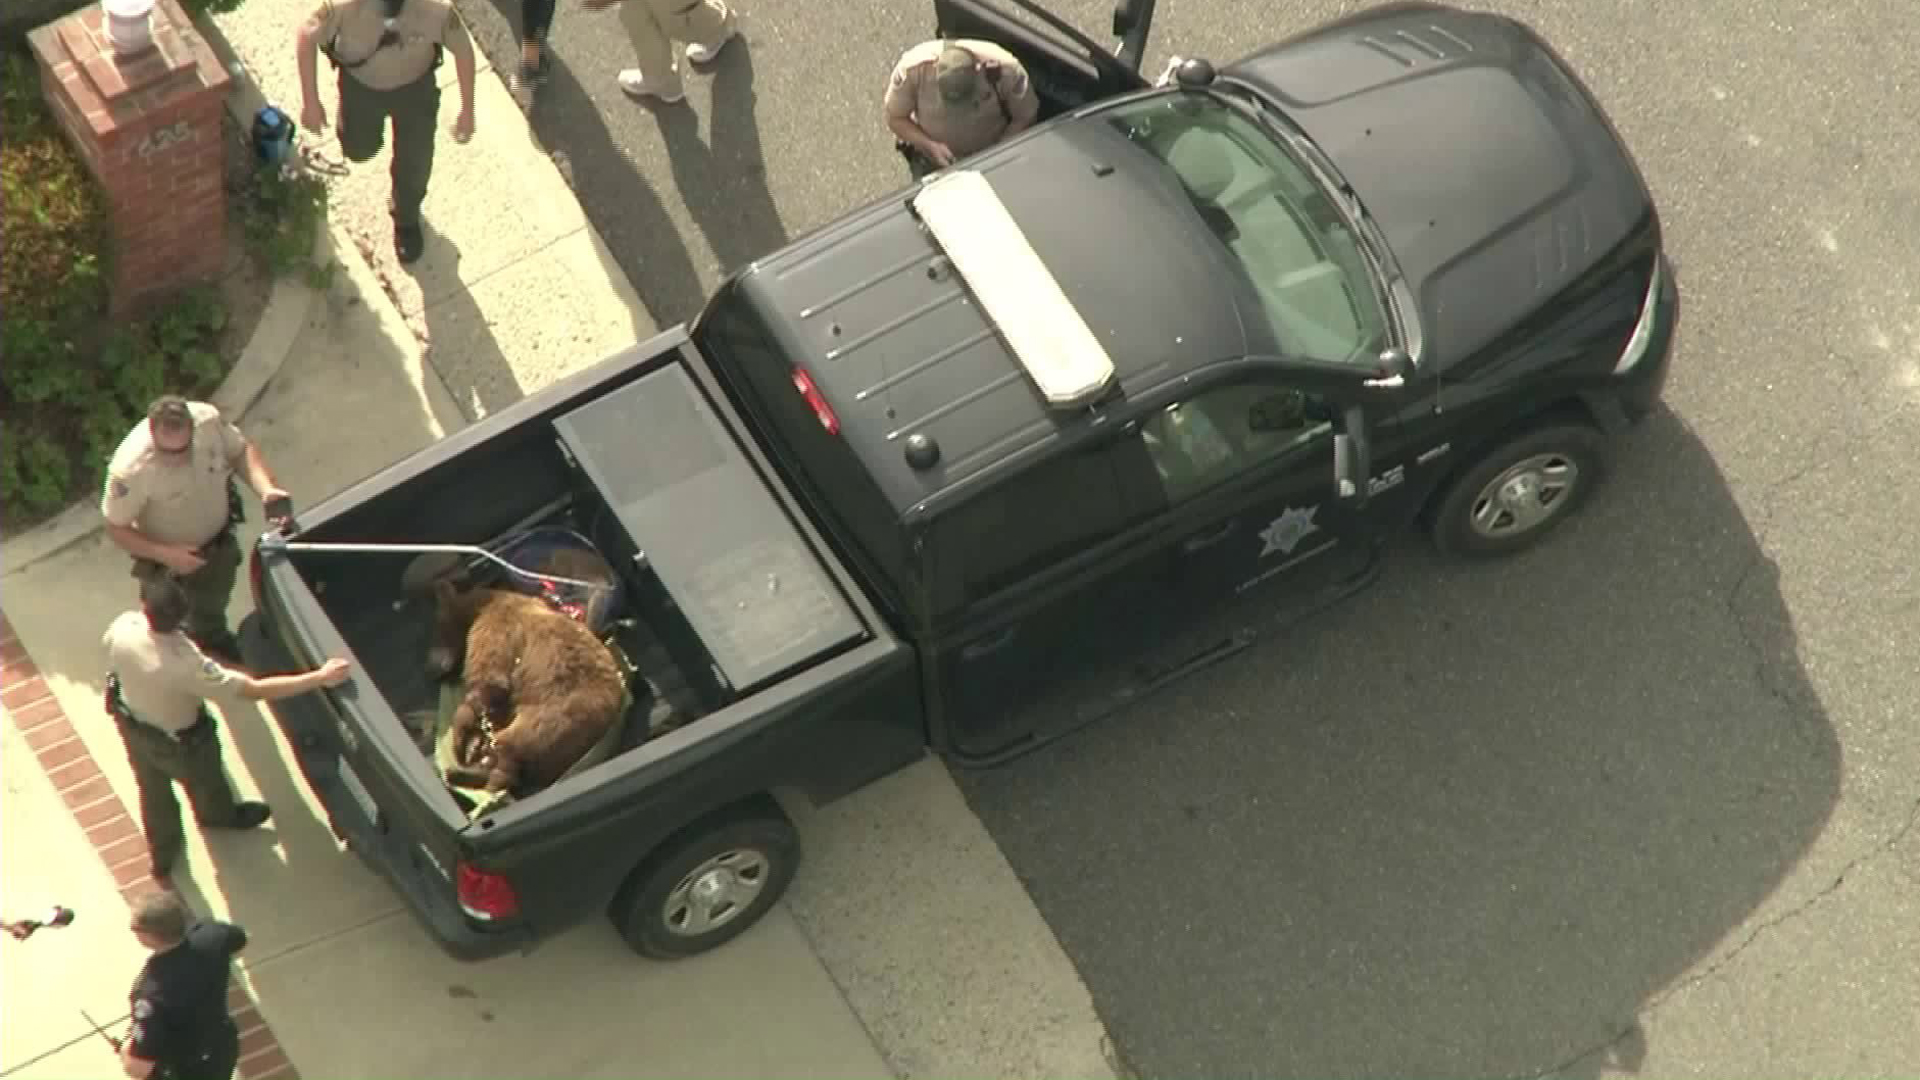 A mama bear and her cub are placed in the bed of a pickup truck after being tranquilized following a confrontation with a man in Sierra Madre on June 10, 2019. (Credit: KTLA)